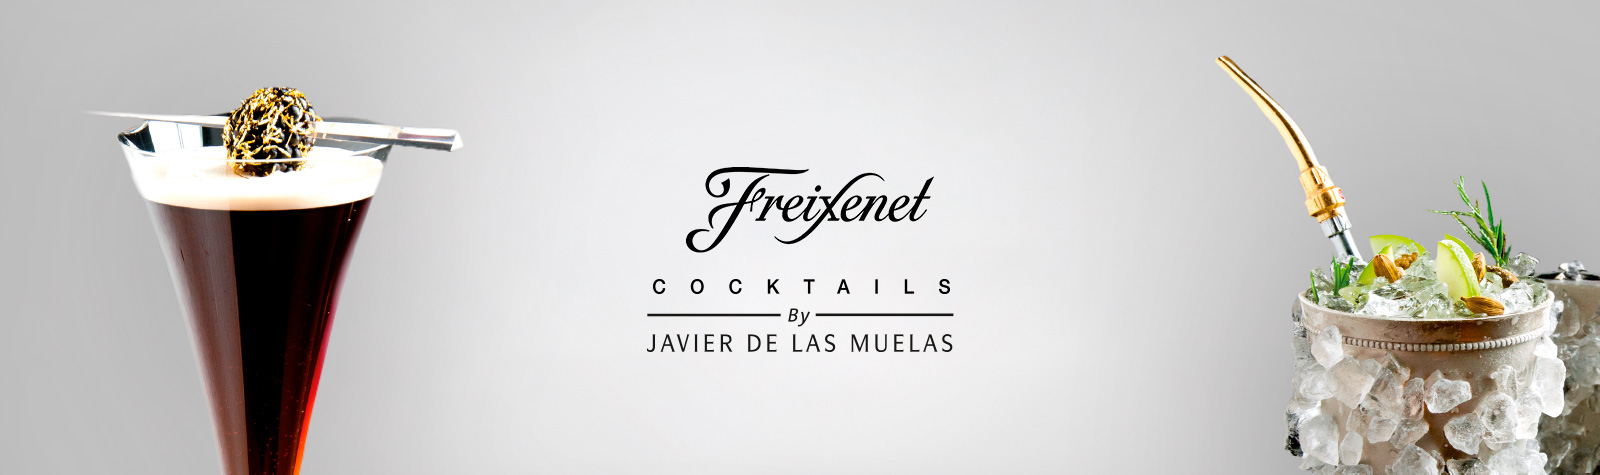 Background - COCKTAILS BY JAVIER DE LAS MUELAS